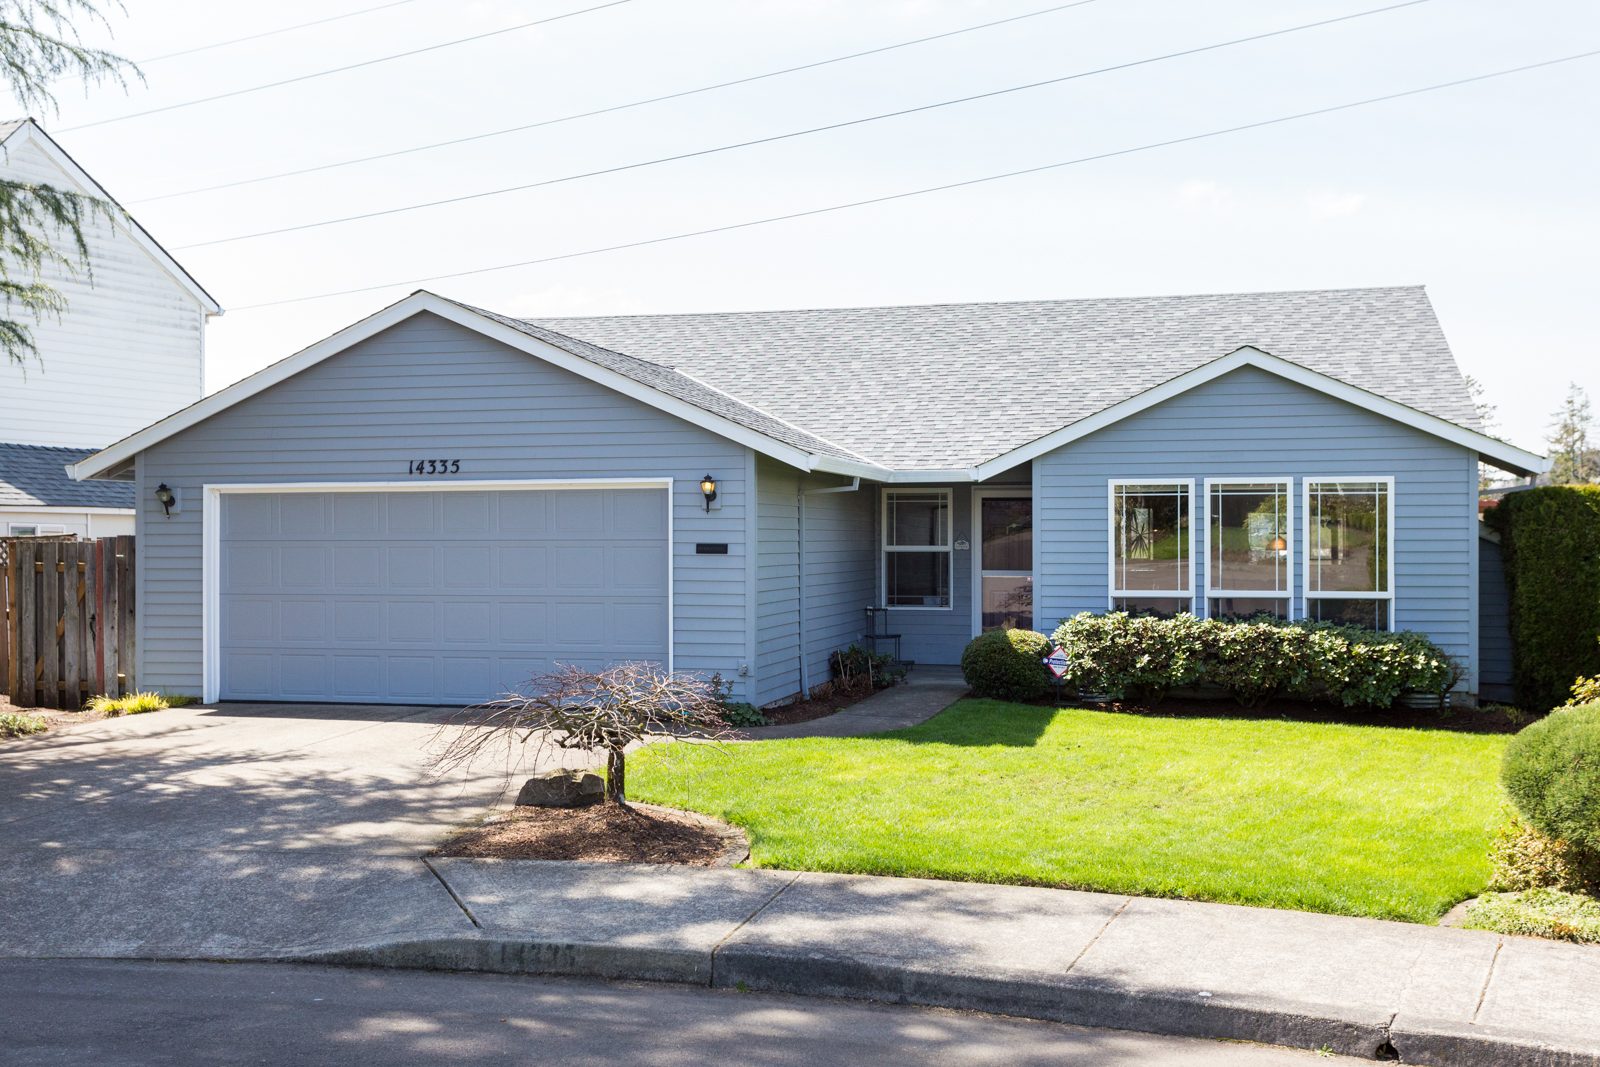 SOLD for $372,000! Received 13 offers! Listed at $335,000 - 14335 SW Windsong Ct., Tigard 97223